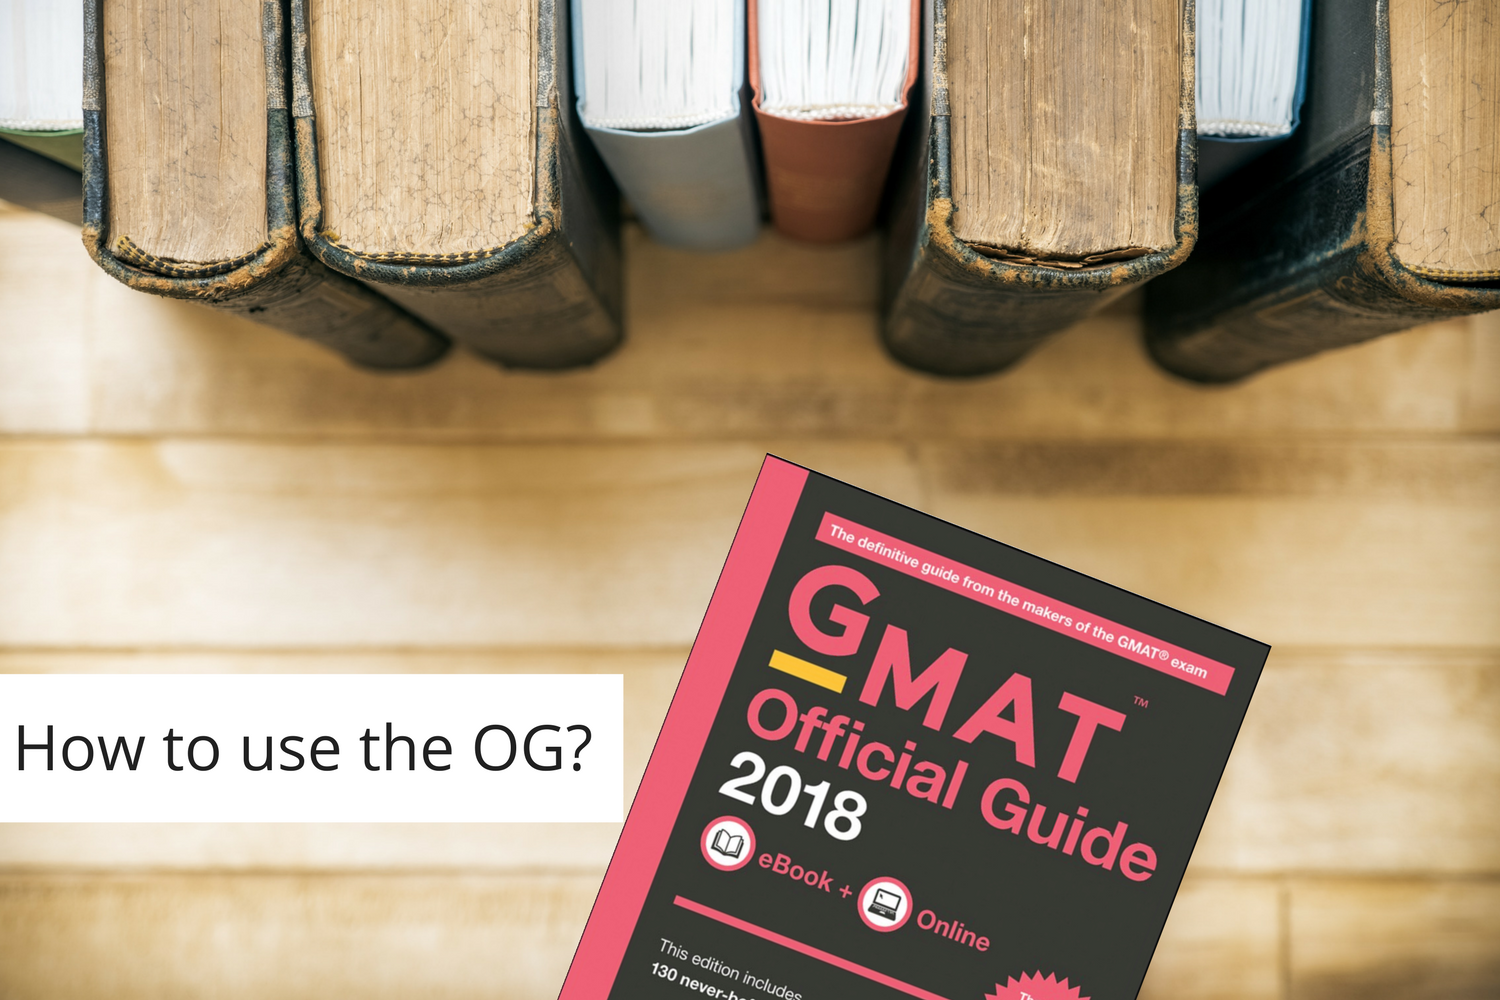 The Official Guide For GMAT 2018 — The Right Way To Use It